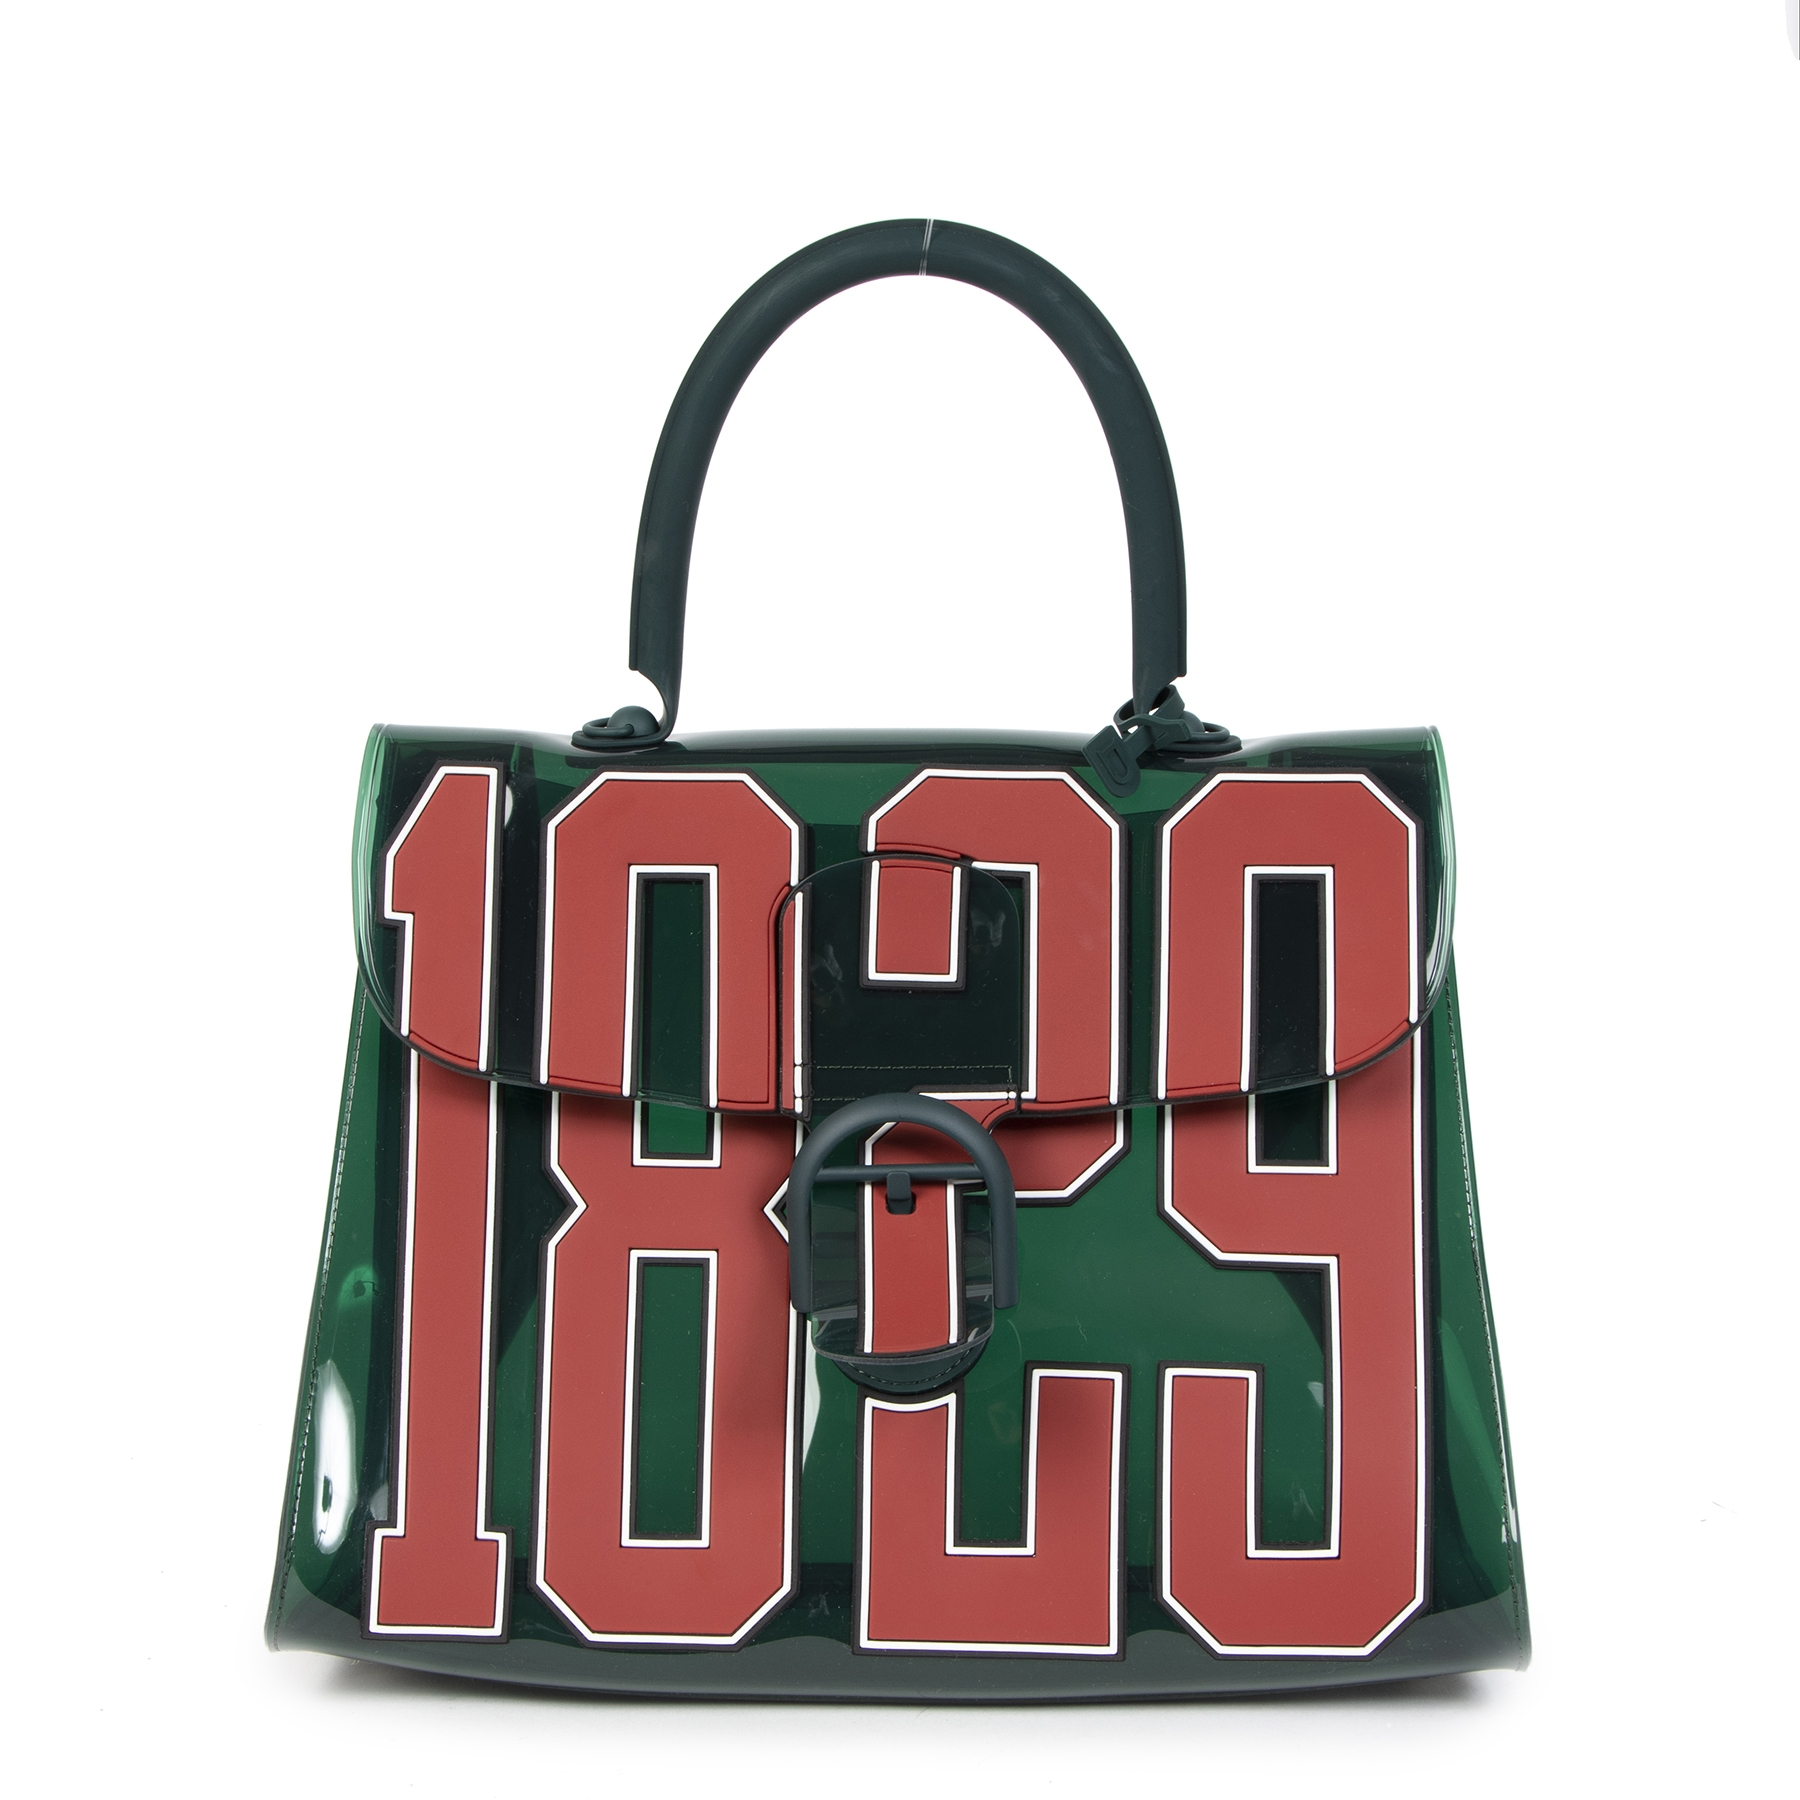 Buy authentic secondhand Delvaux Limited Edition Brillant Vinyl The Hero 1829 at the right price at LabelLOV vintage webshop. Safe and secure online shopping. Koop authentieke tweedehands Delvaux Limited Edition Brillant Vinyl The Hero 1829 met de juiste